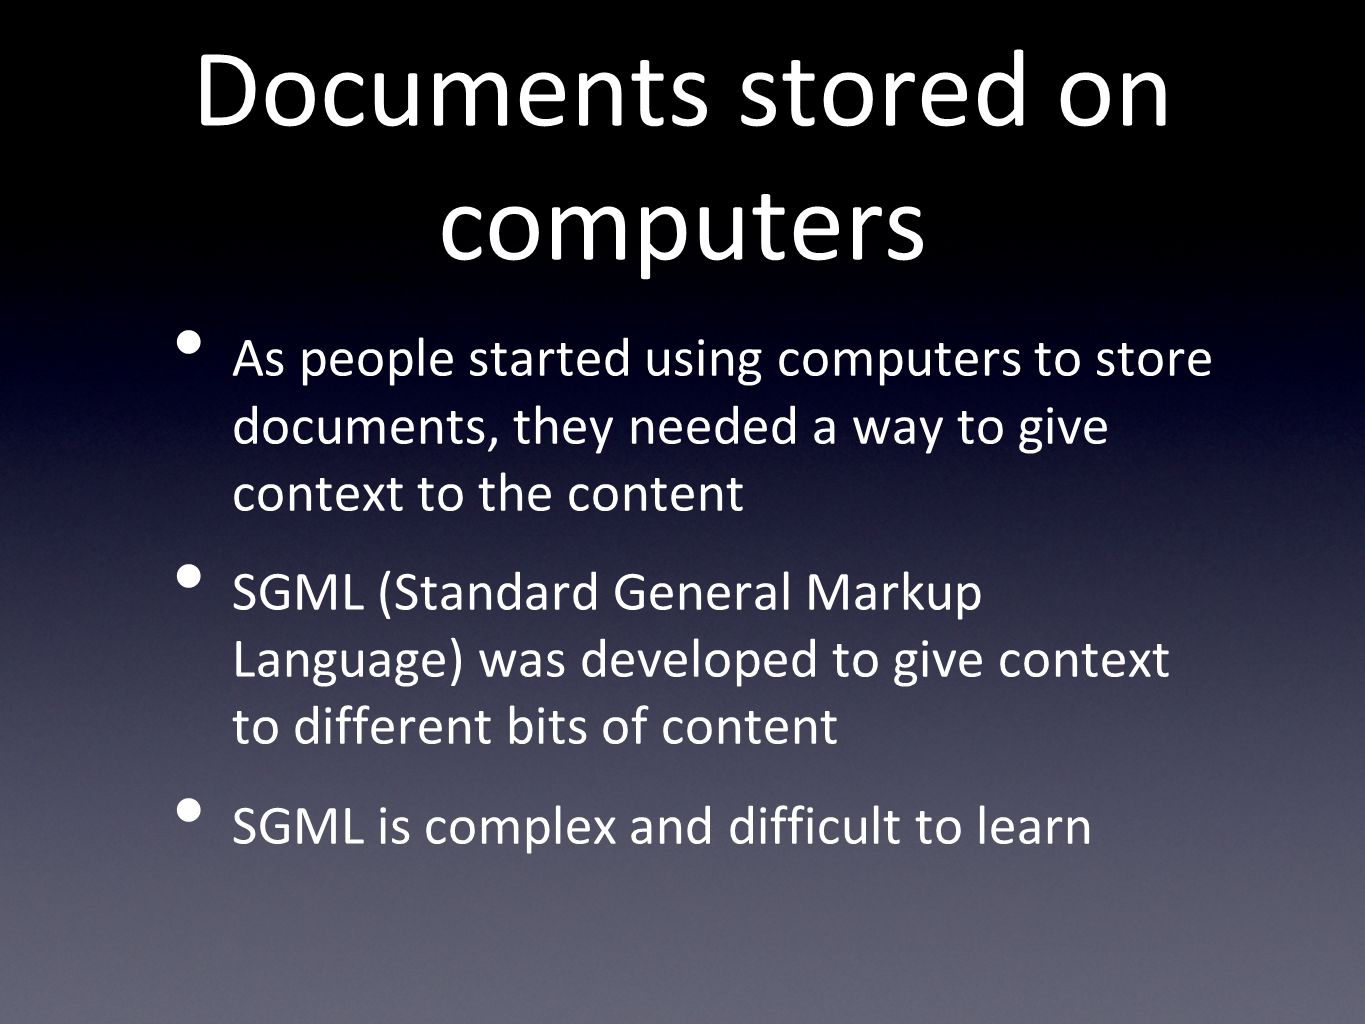 Documents stored on computers As people started using computers to store documents, they needed a way to give context to the content SGML (Standard General Markup Language) was developed to give context to different bits of content SGML is complex and difficult to learn